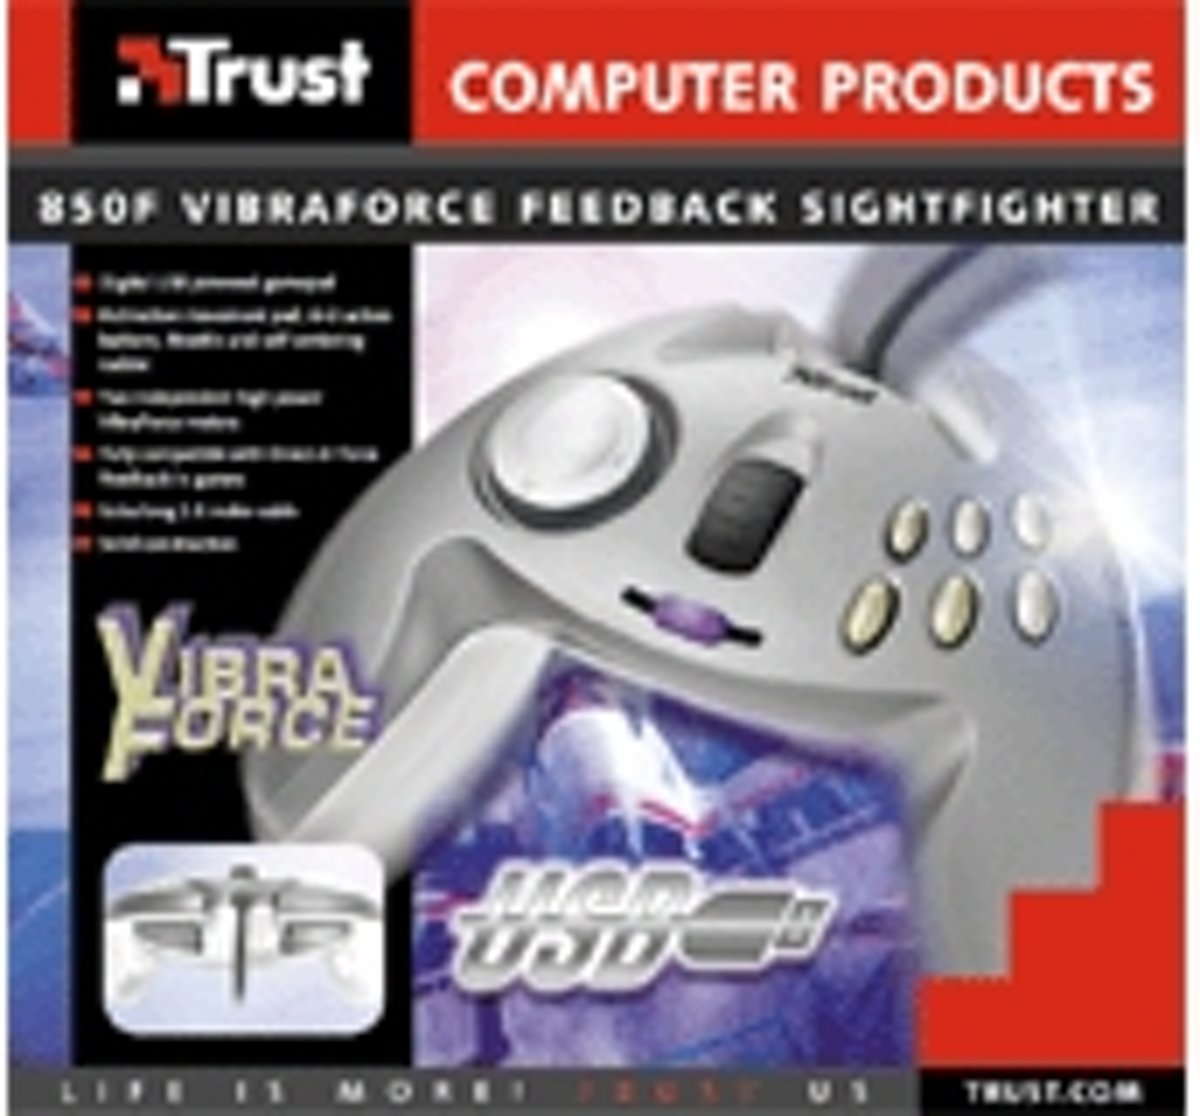 TRUST Gamepad VIBRAFORCE FEEDBACK SIGHT FIGHTER Driver for Windows 10